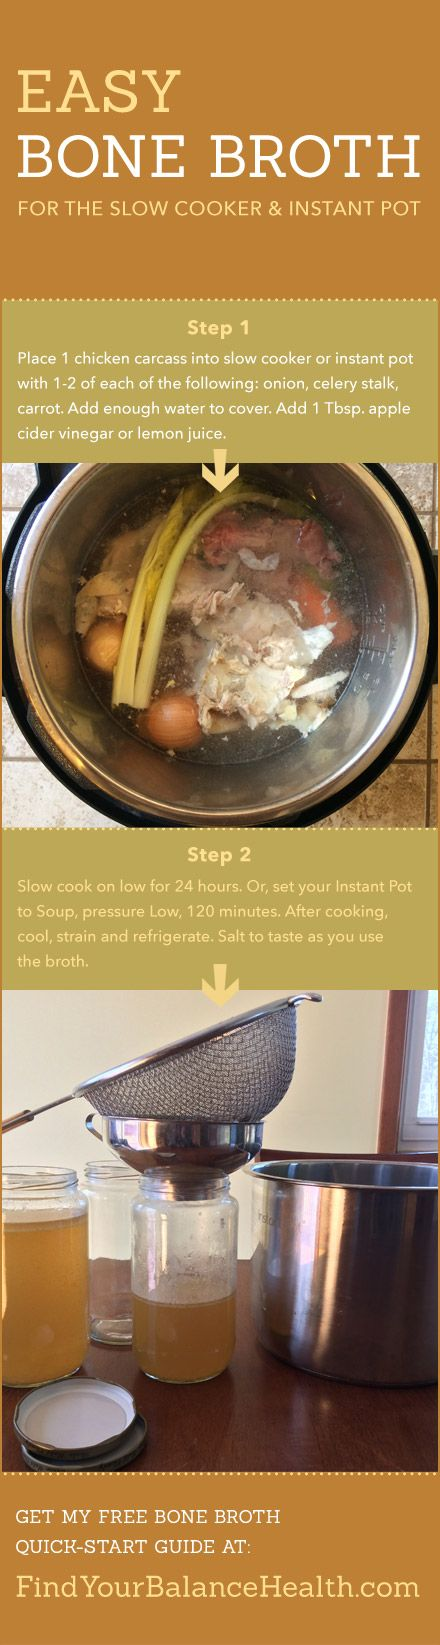 Bone Broth Benefits & Easy Recipe (Slow cooker or Instant Pot)